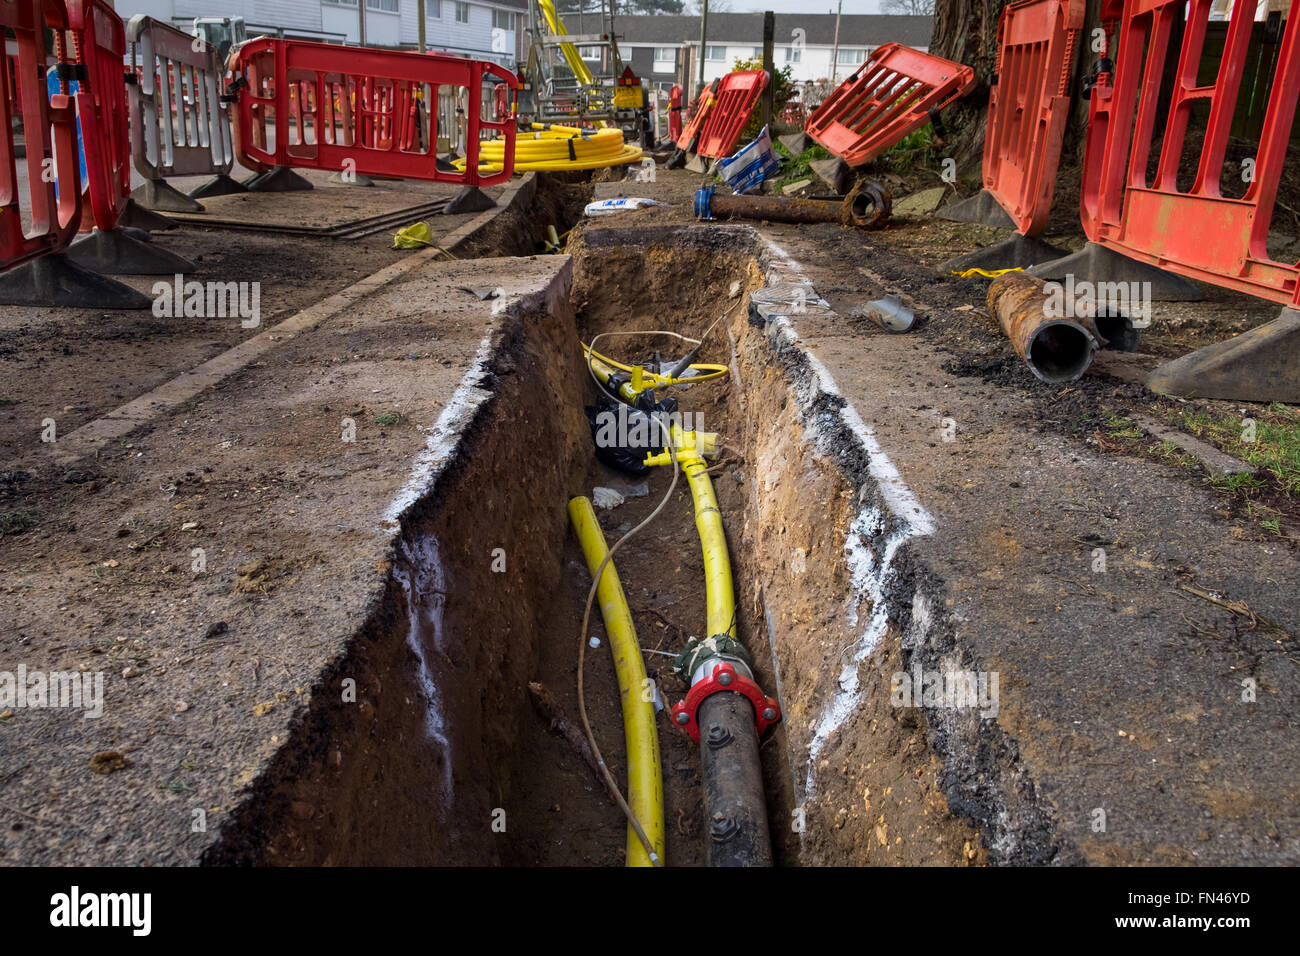 Old metal gas mains pipes being replaced with plastic pipes to prevent gas leaks due to corrosion of the metal pipes - Stock Image